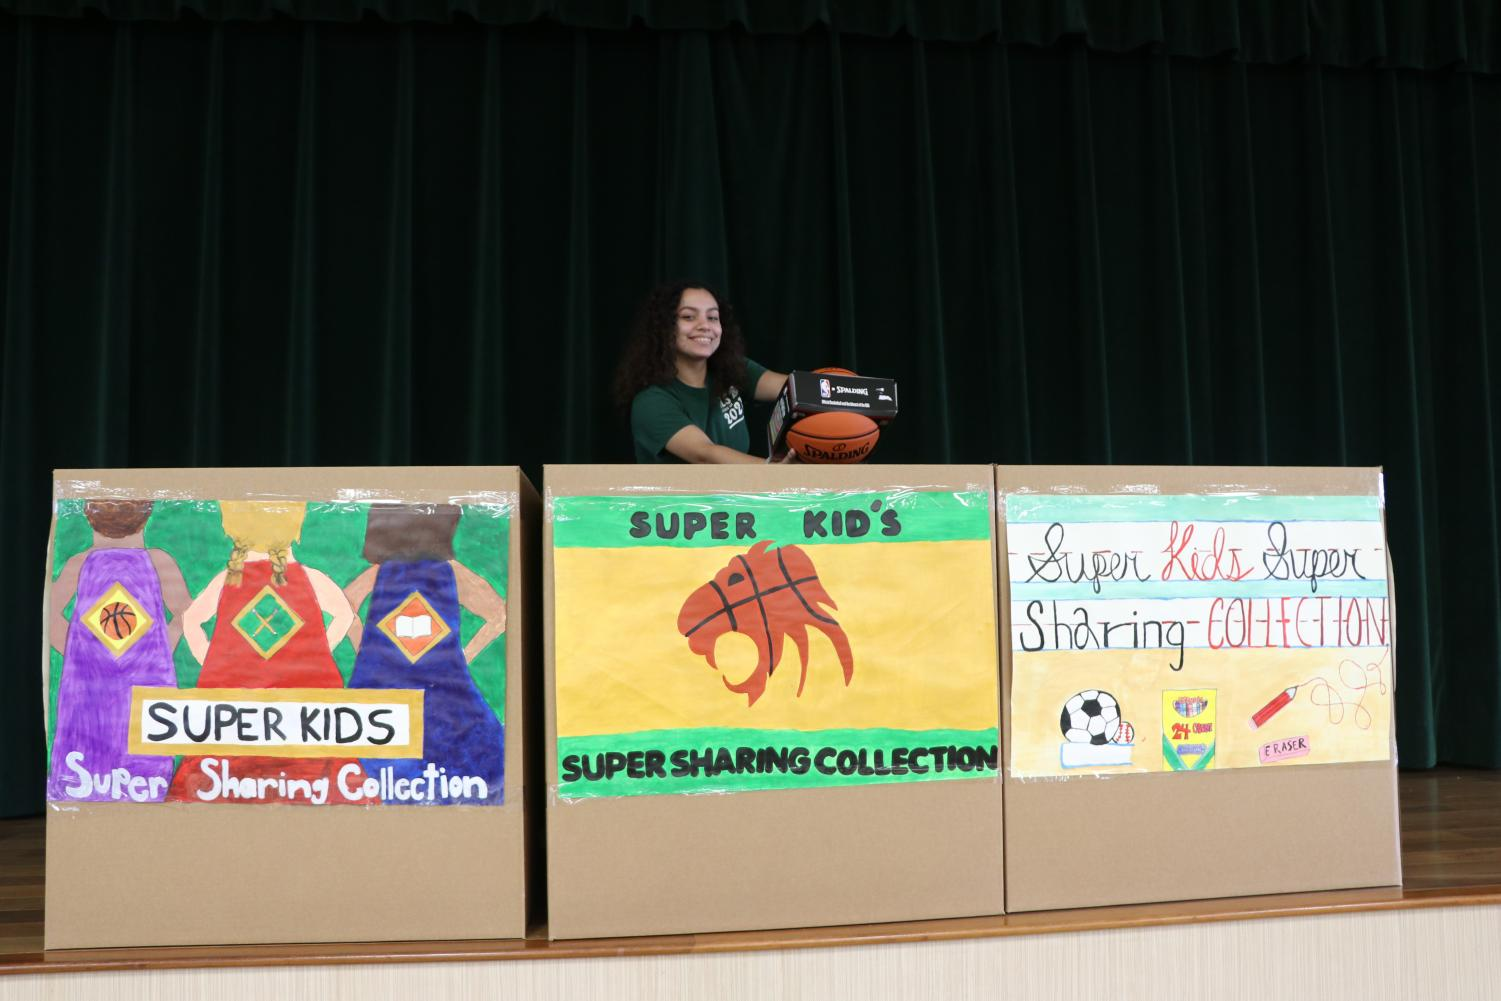 The Super Kids-Super Sharing charity event is done as part of the Super Bowl festivities.